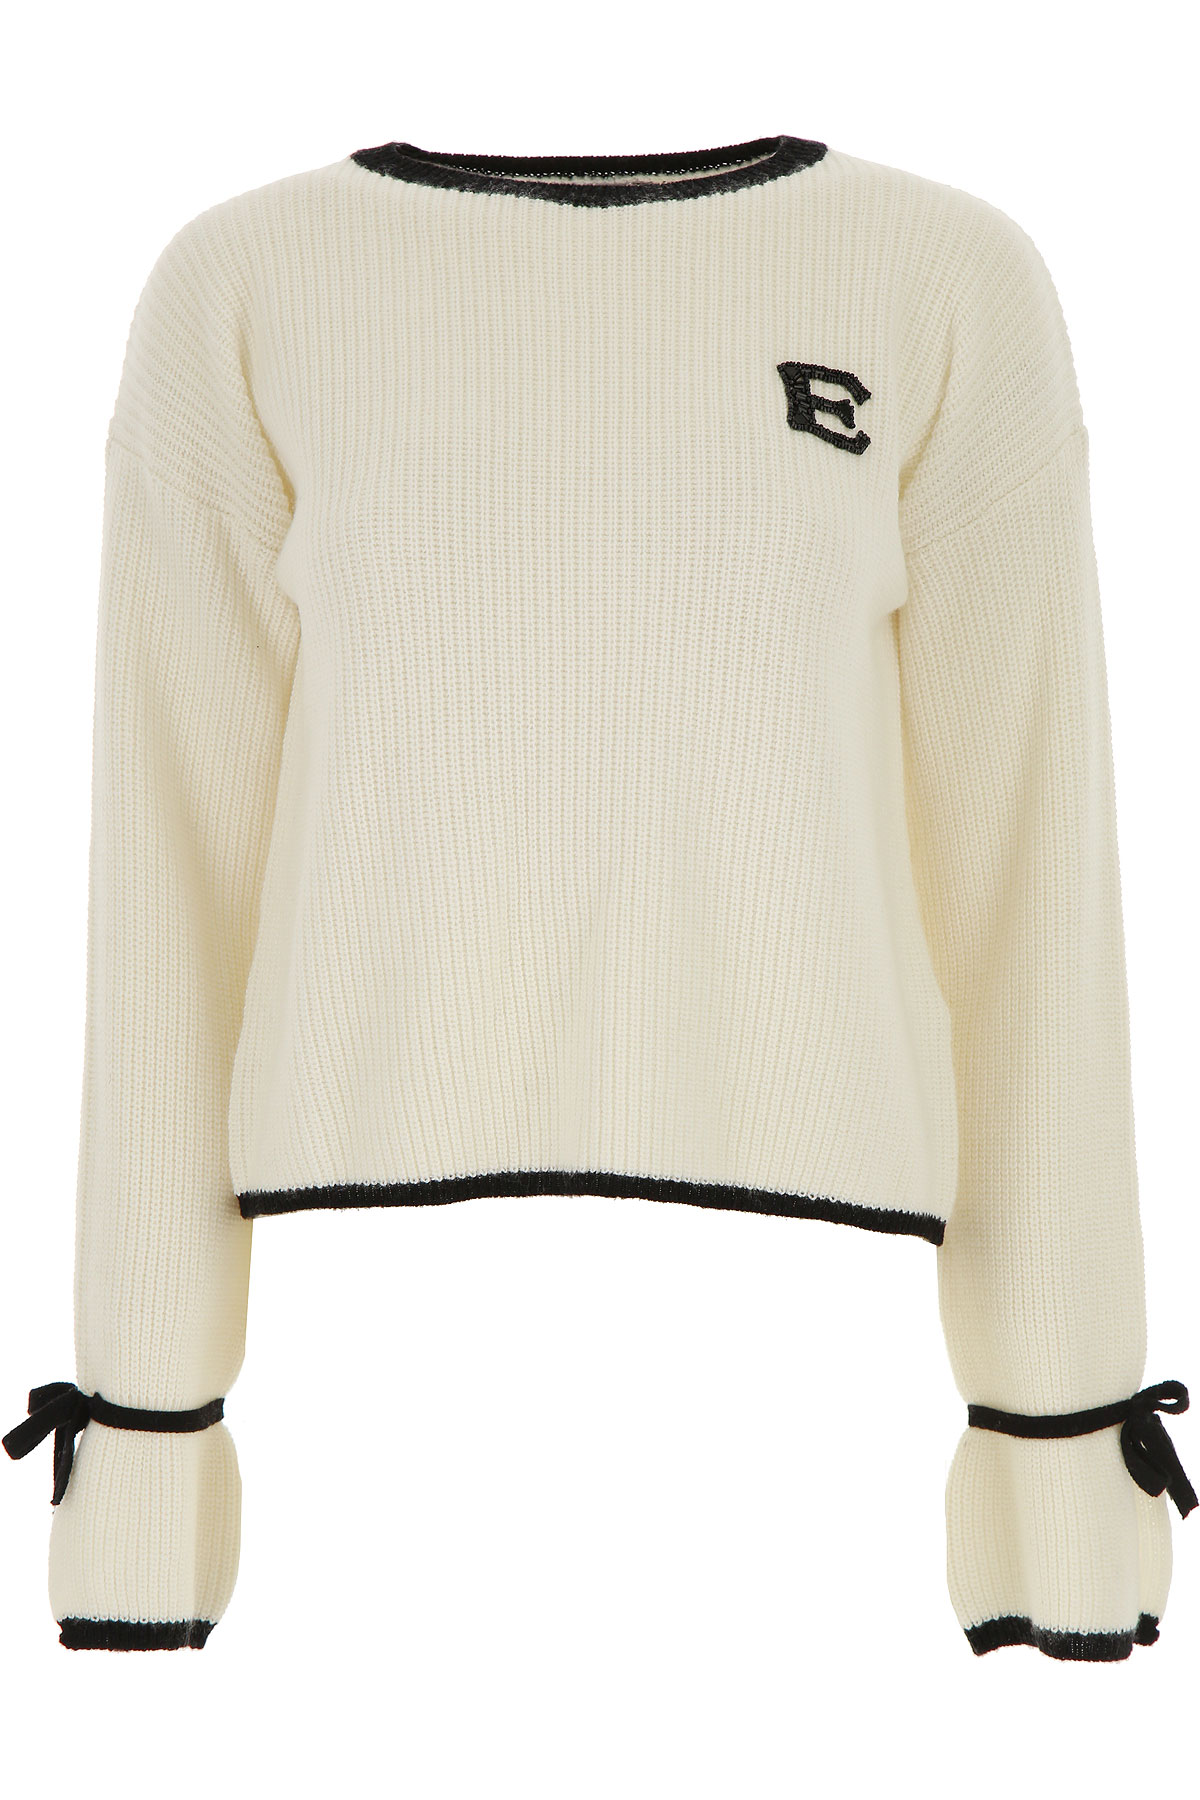 Ermanno Scervino Kids Sweaters for Girls On Sale, White, polyamide, 2019, 10Y 16Y